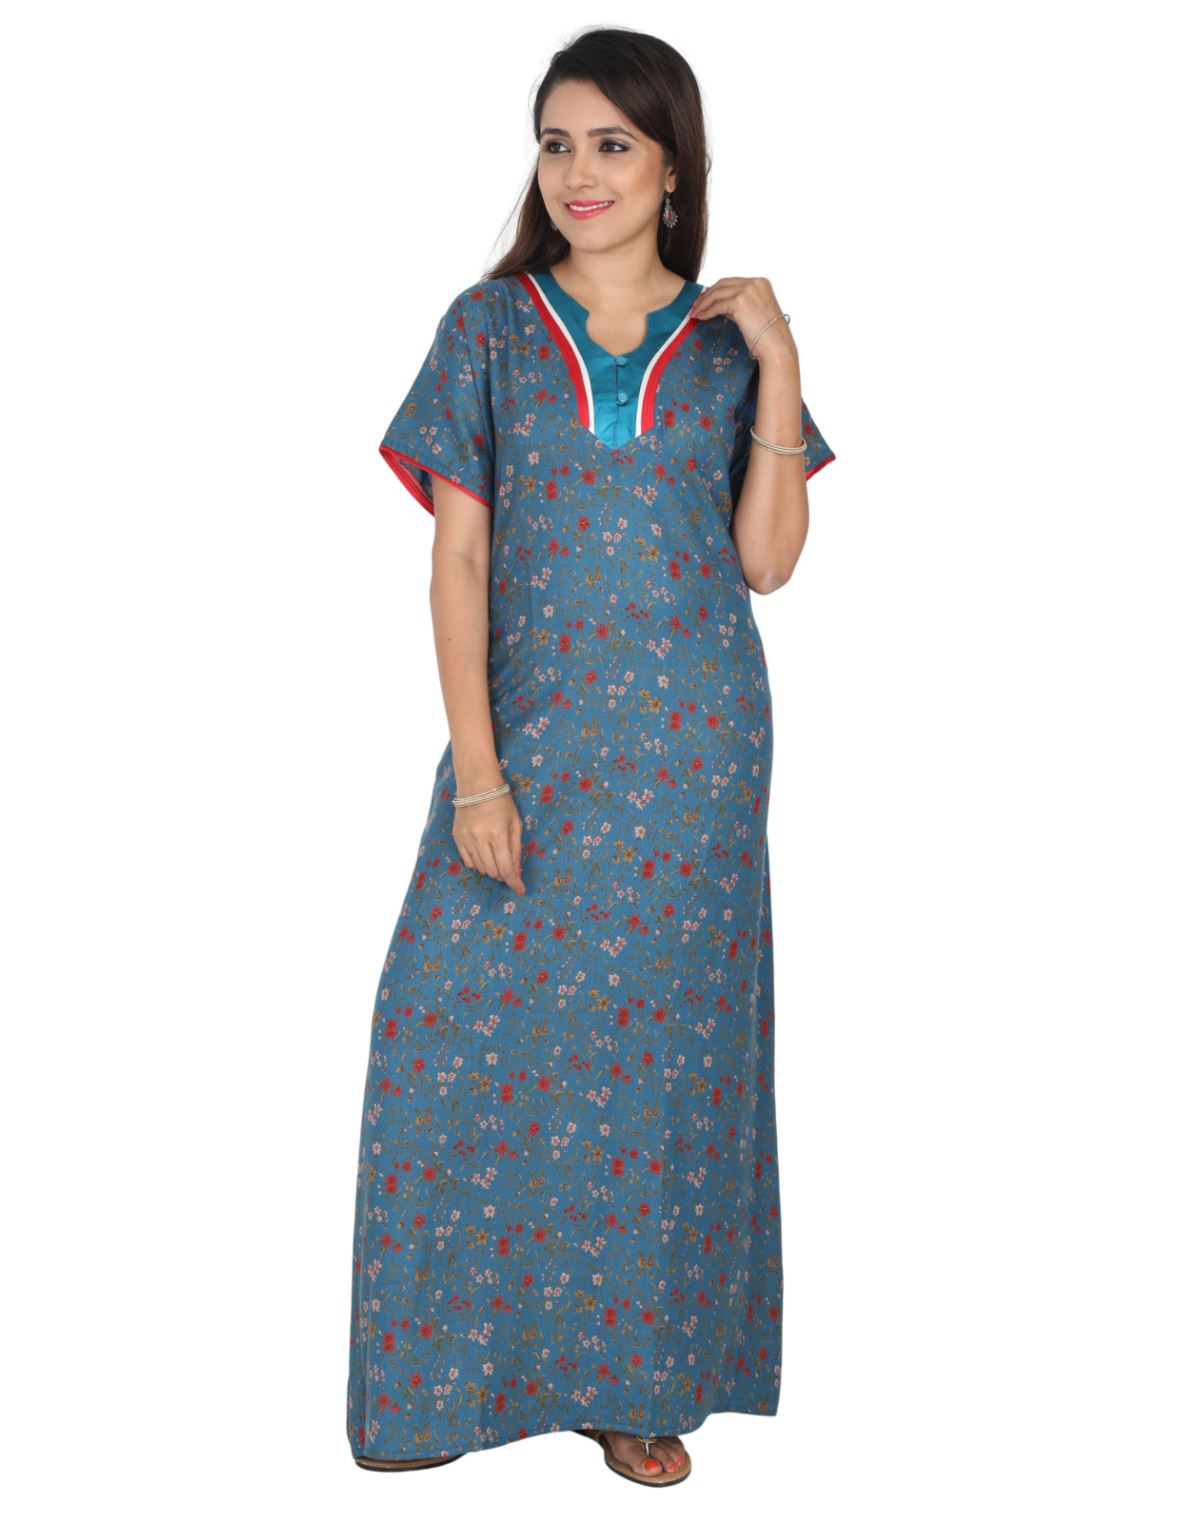 Womens Full Length Premium Alpine Nightwear - No zip - Slim Fit Womens Nighty NK - Kiwi